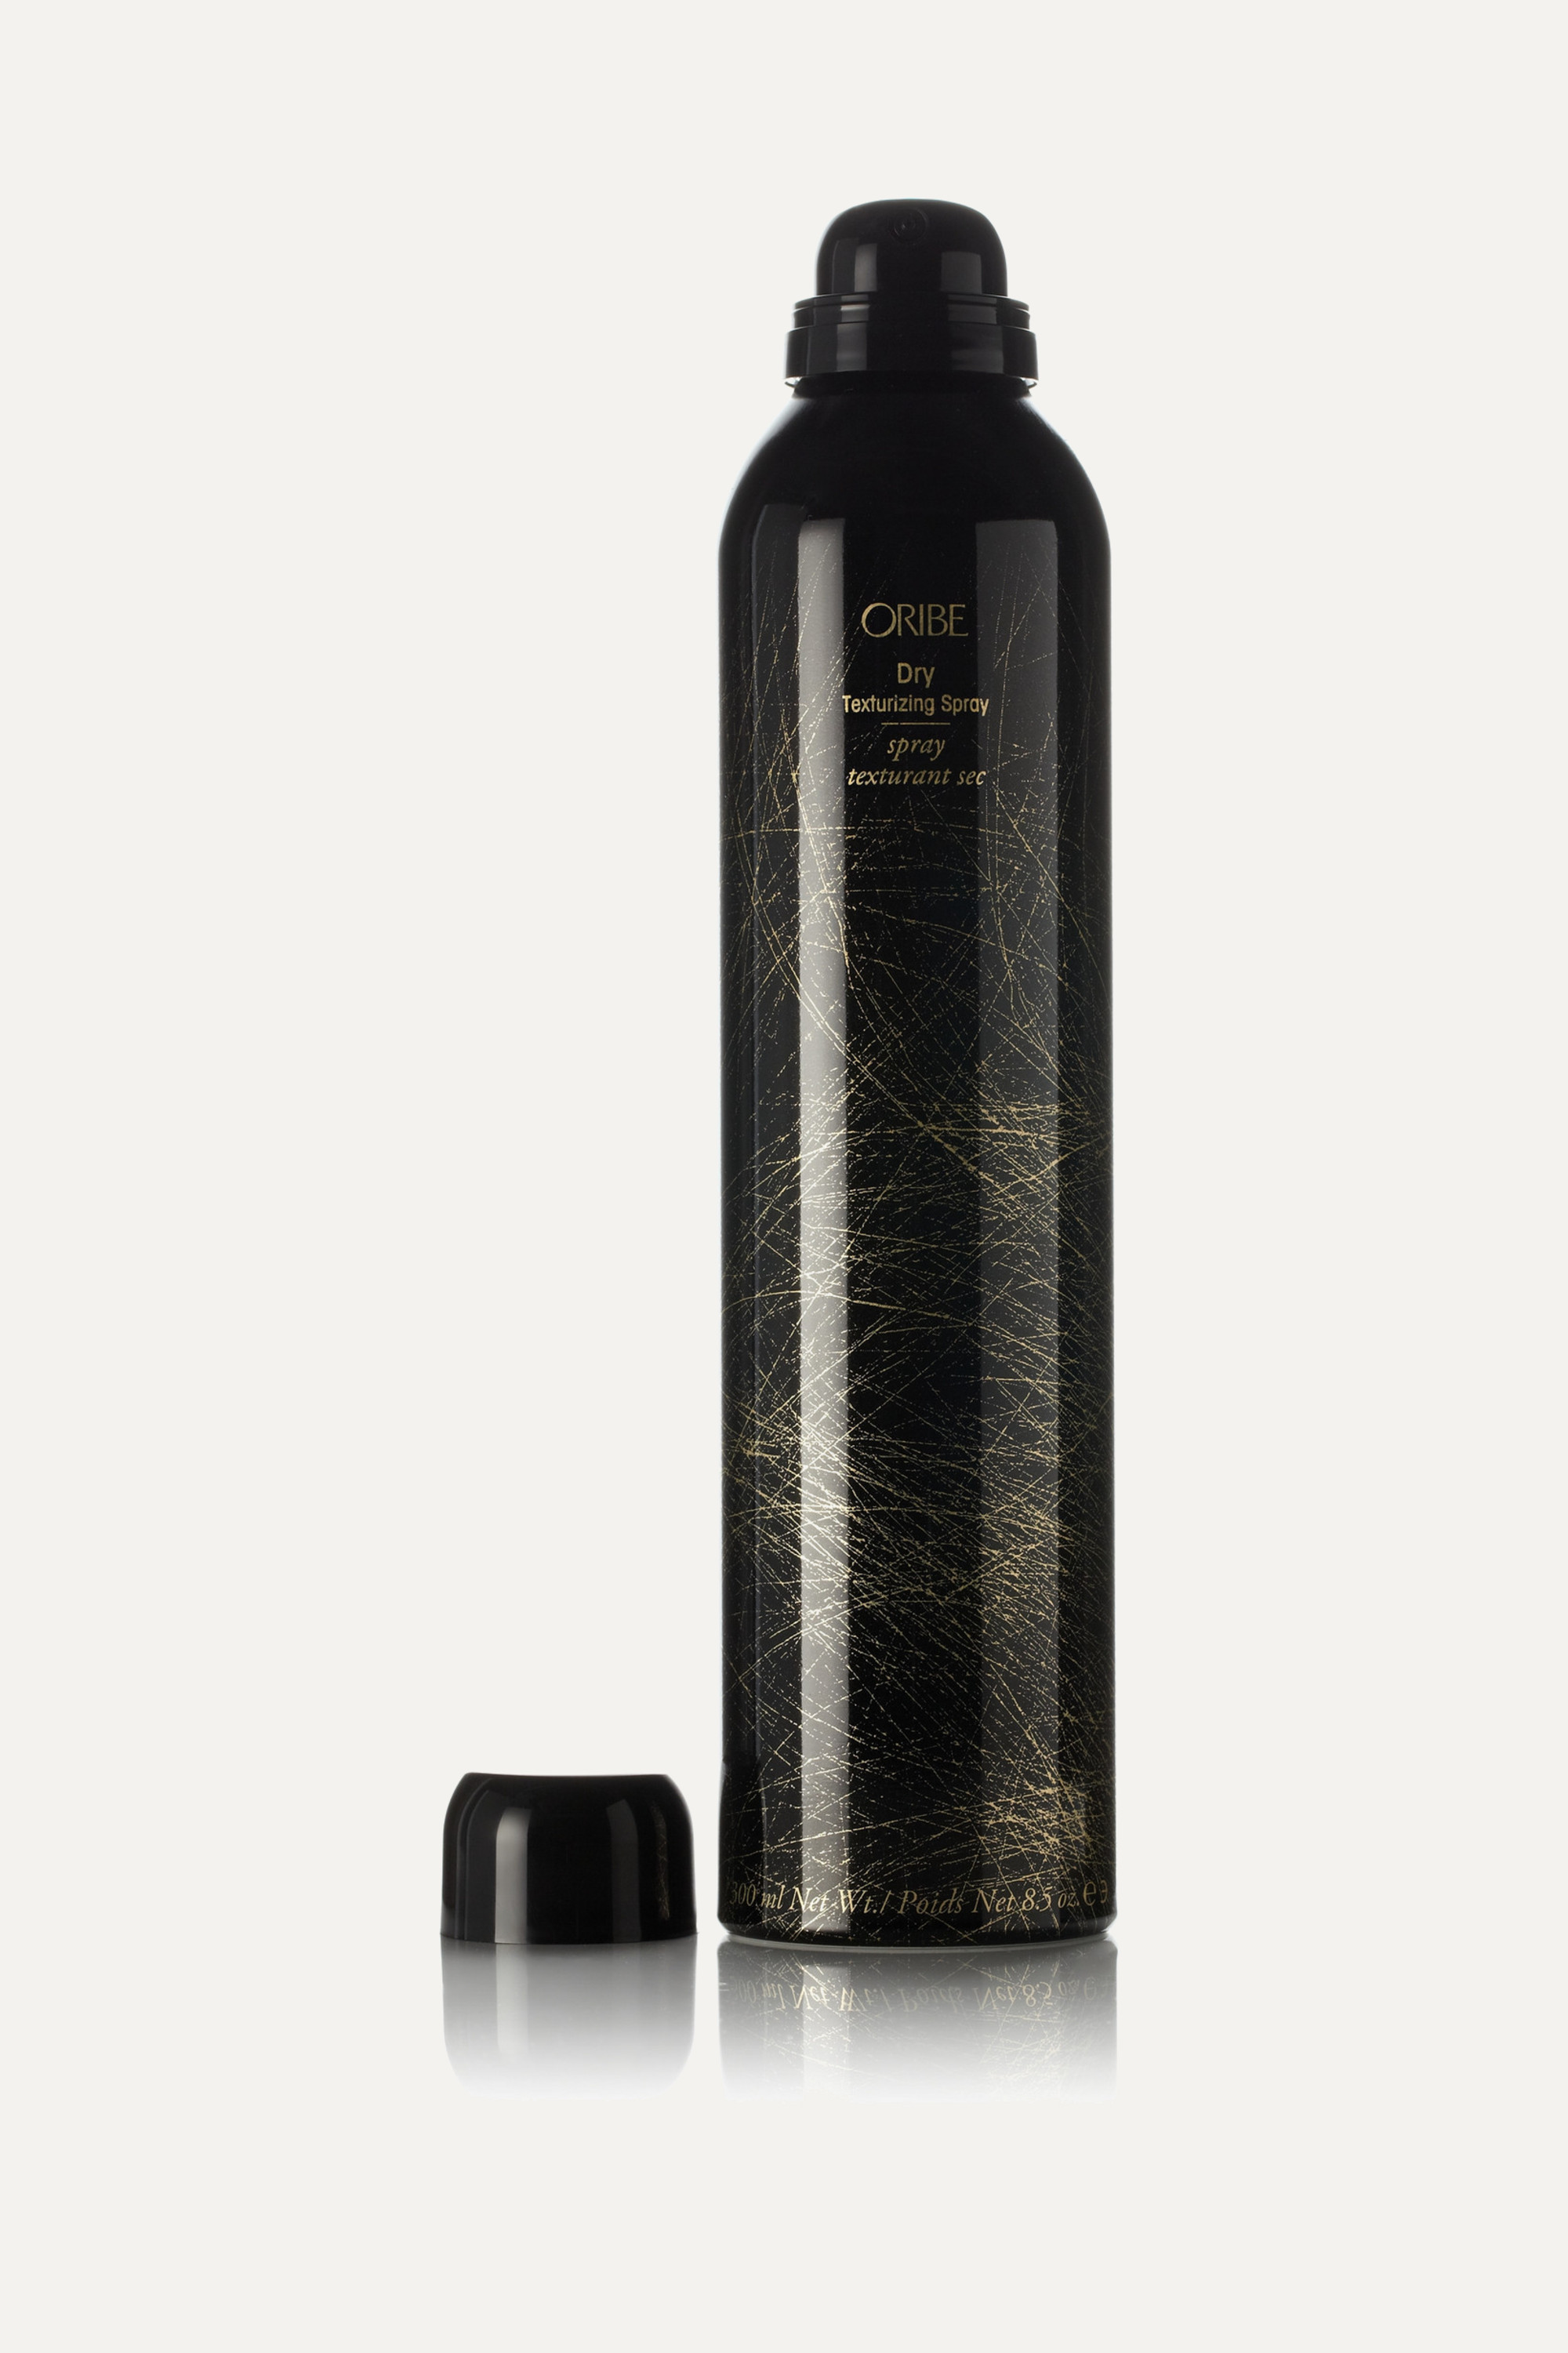 Oribe Dry Texturizing Spray, 300ml